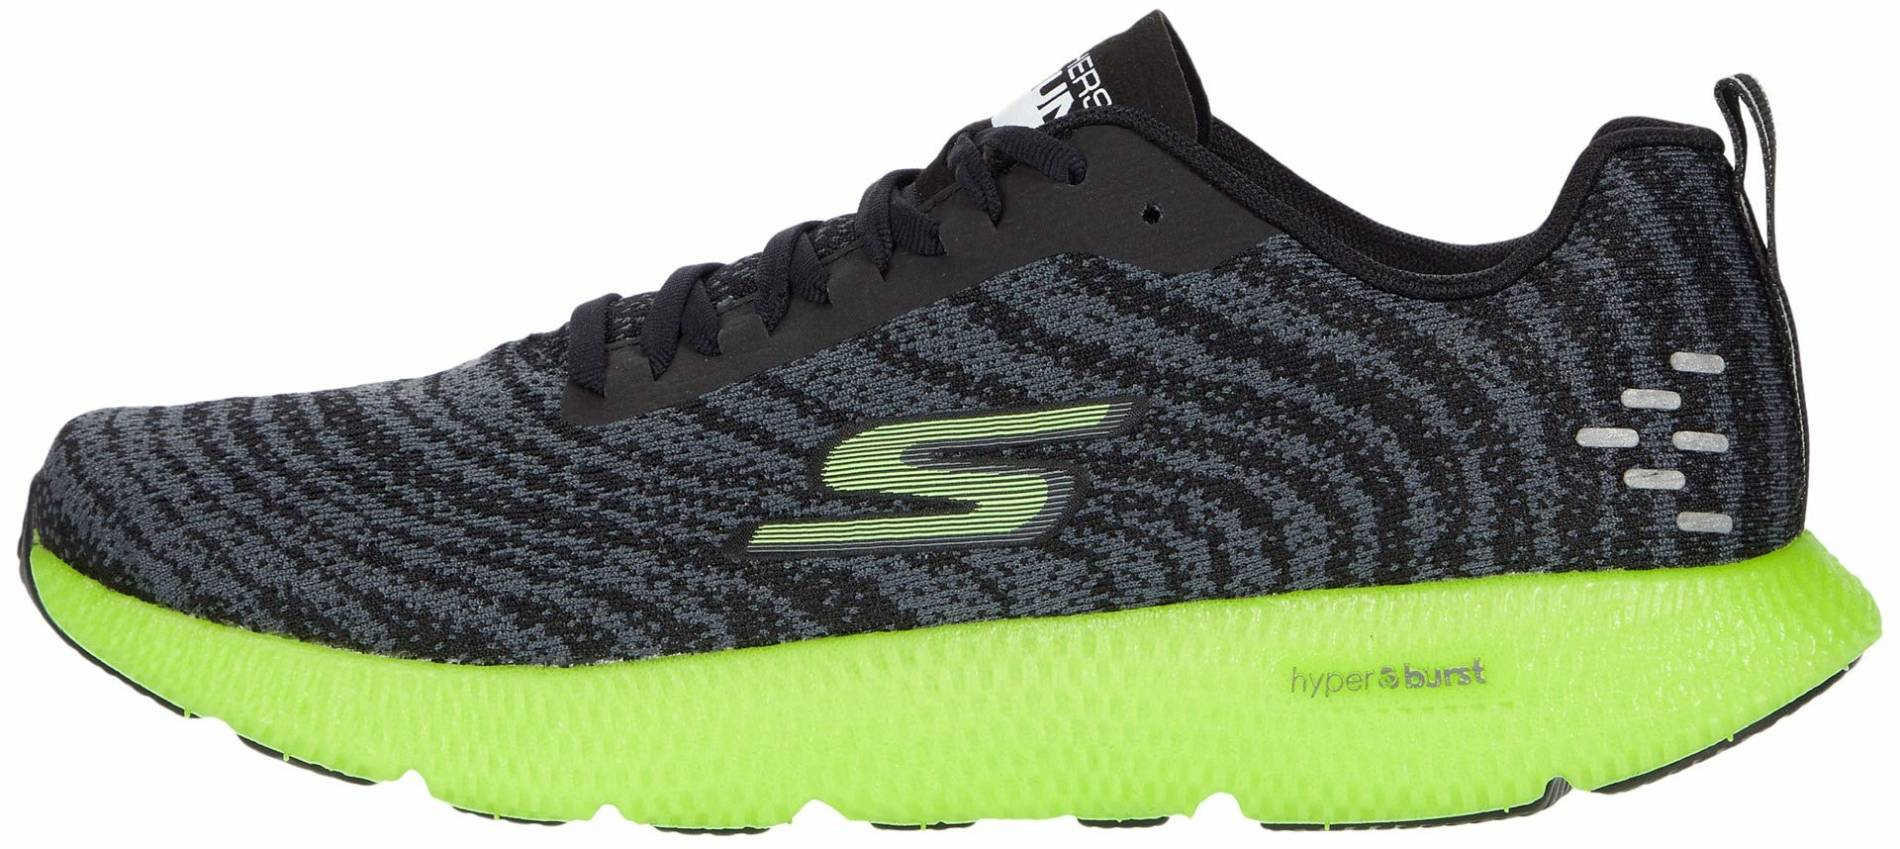 Only $80 + Review of Skechers GOrun 7+